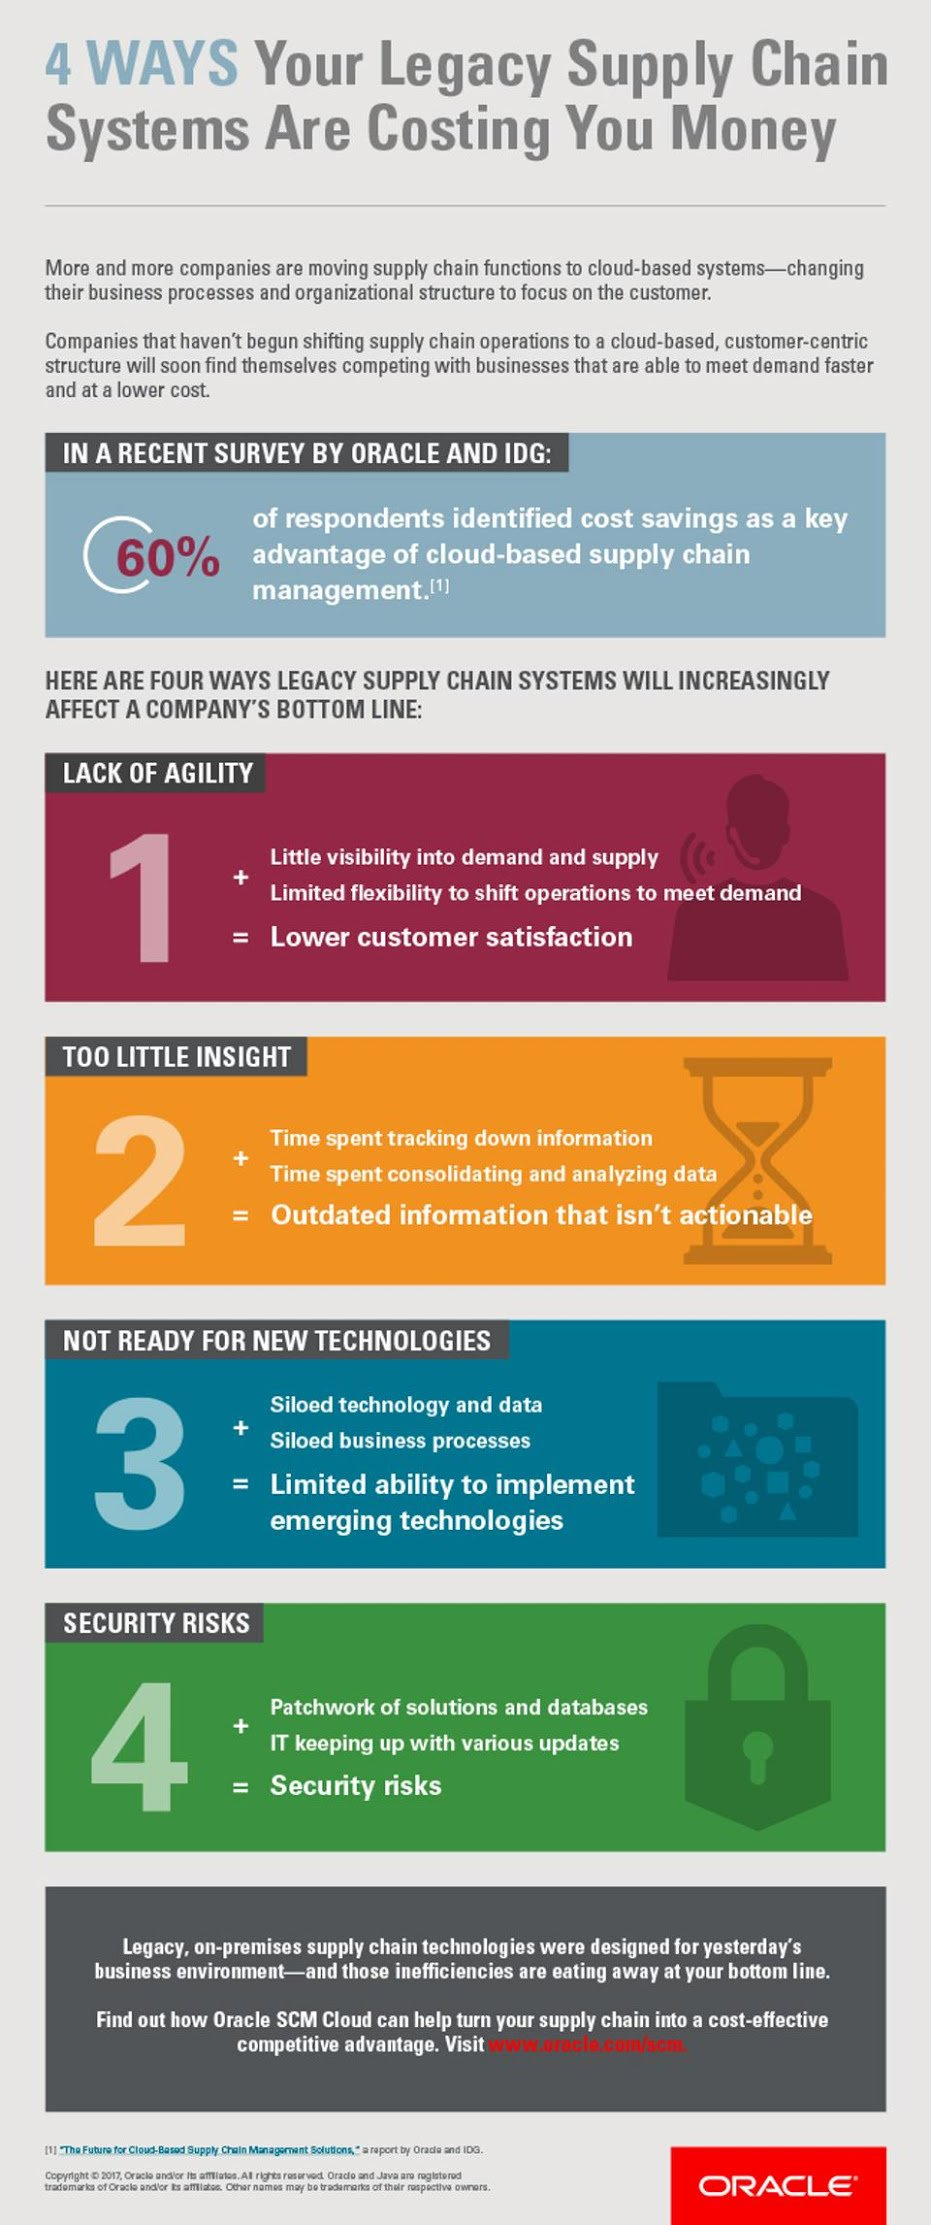 4 Ways Your Legacy Supply Chain Systems are Costing You Money